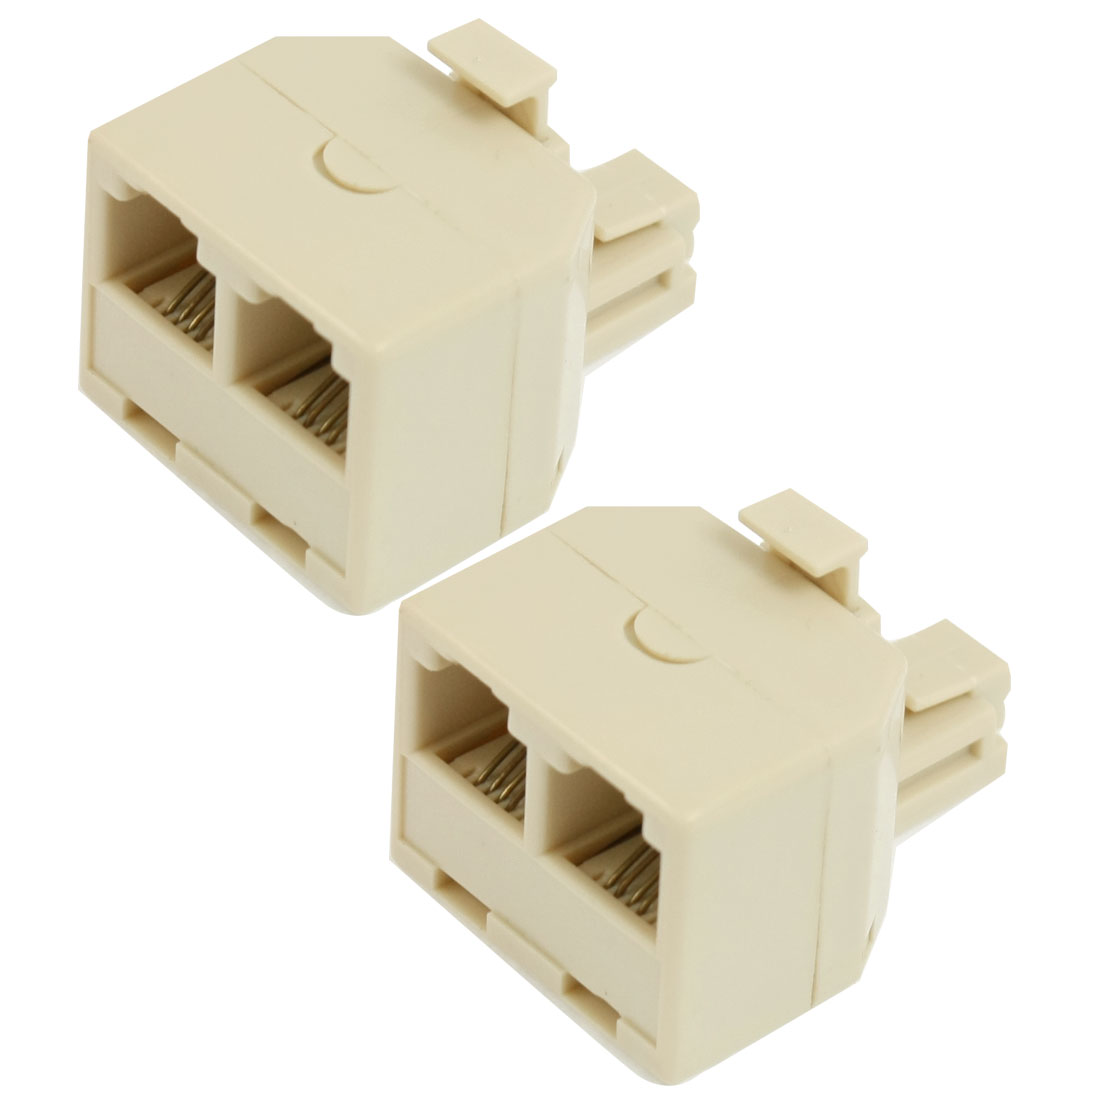 RJ11 4 Pins 1 Male to 2 Female Telephone Splitter Connector Adapter 2 Pcs